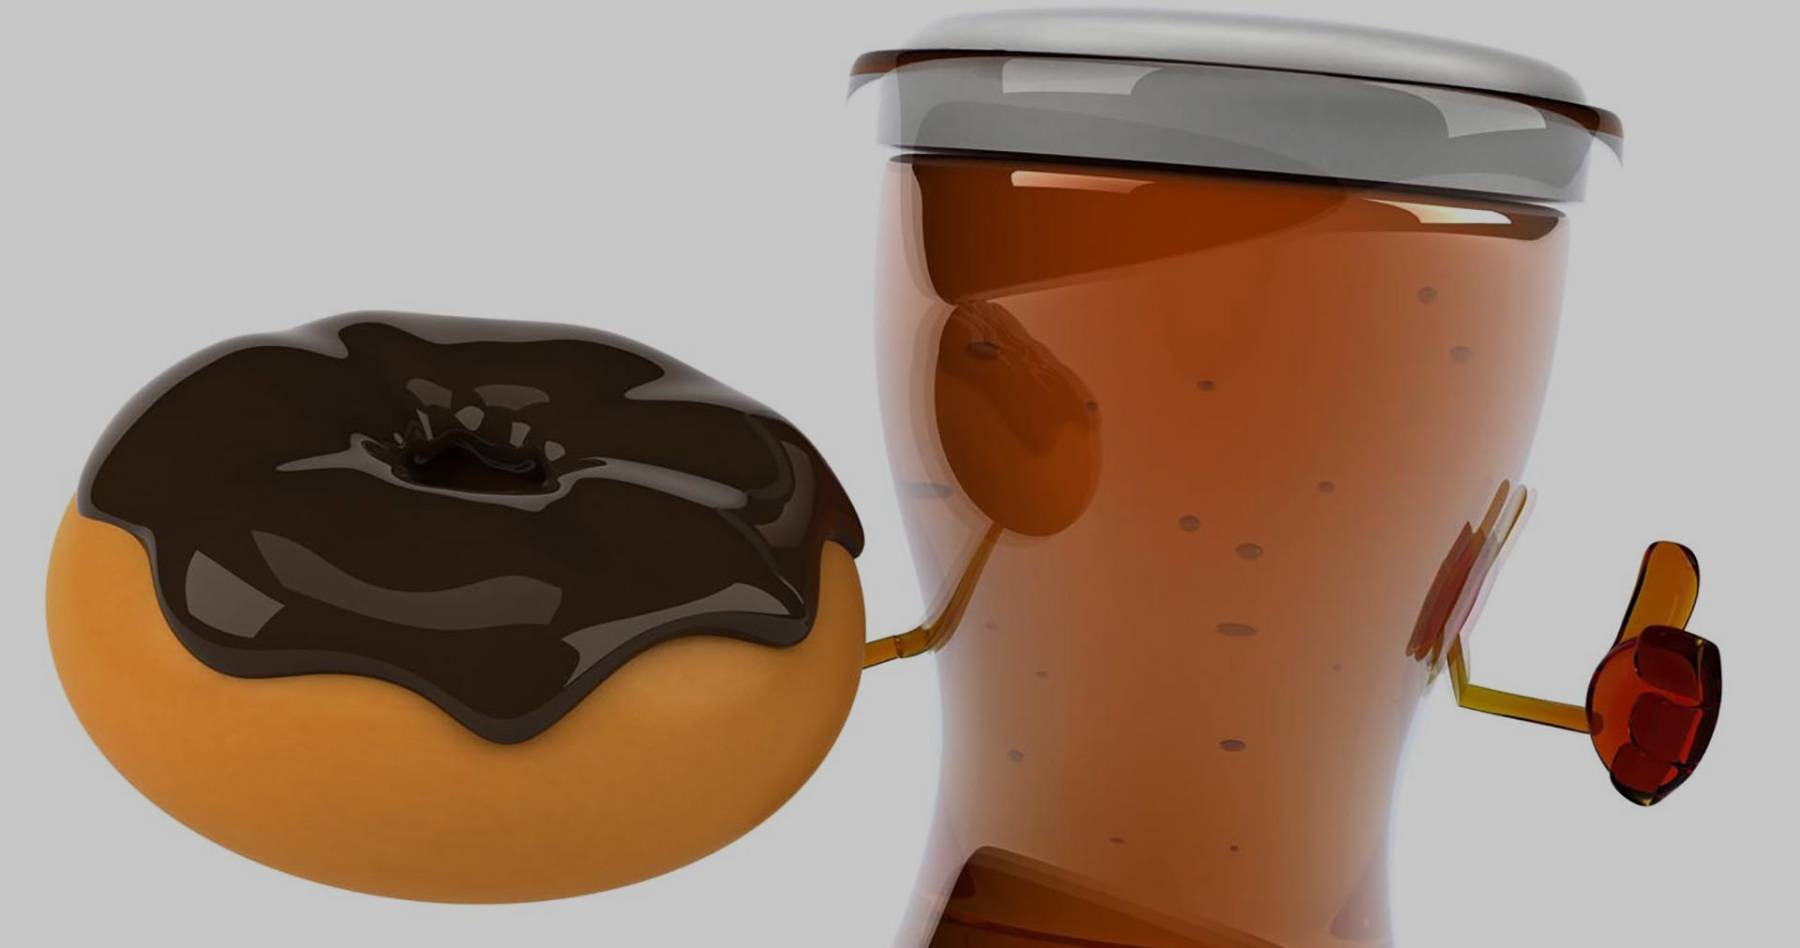 Finally, Someone Combined Beer and Donuts